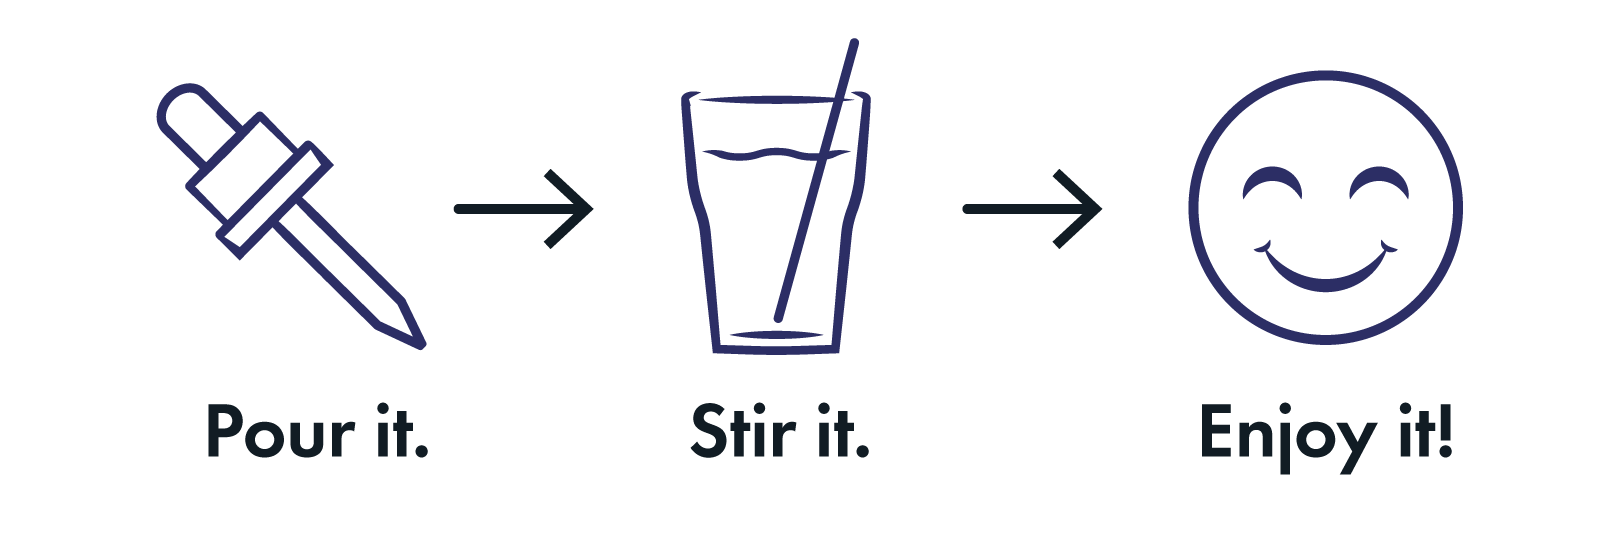 Pour it. Stir it. Enjoy it!